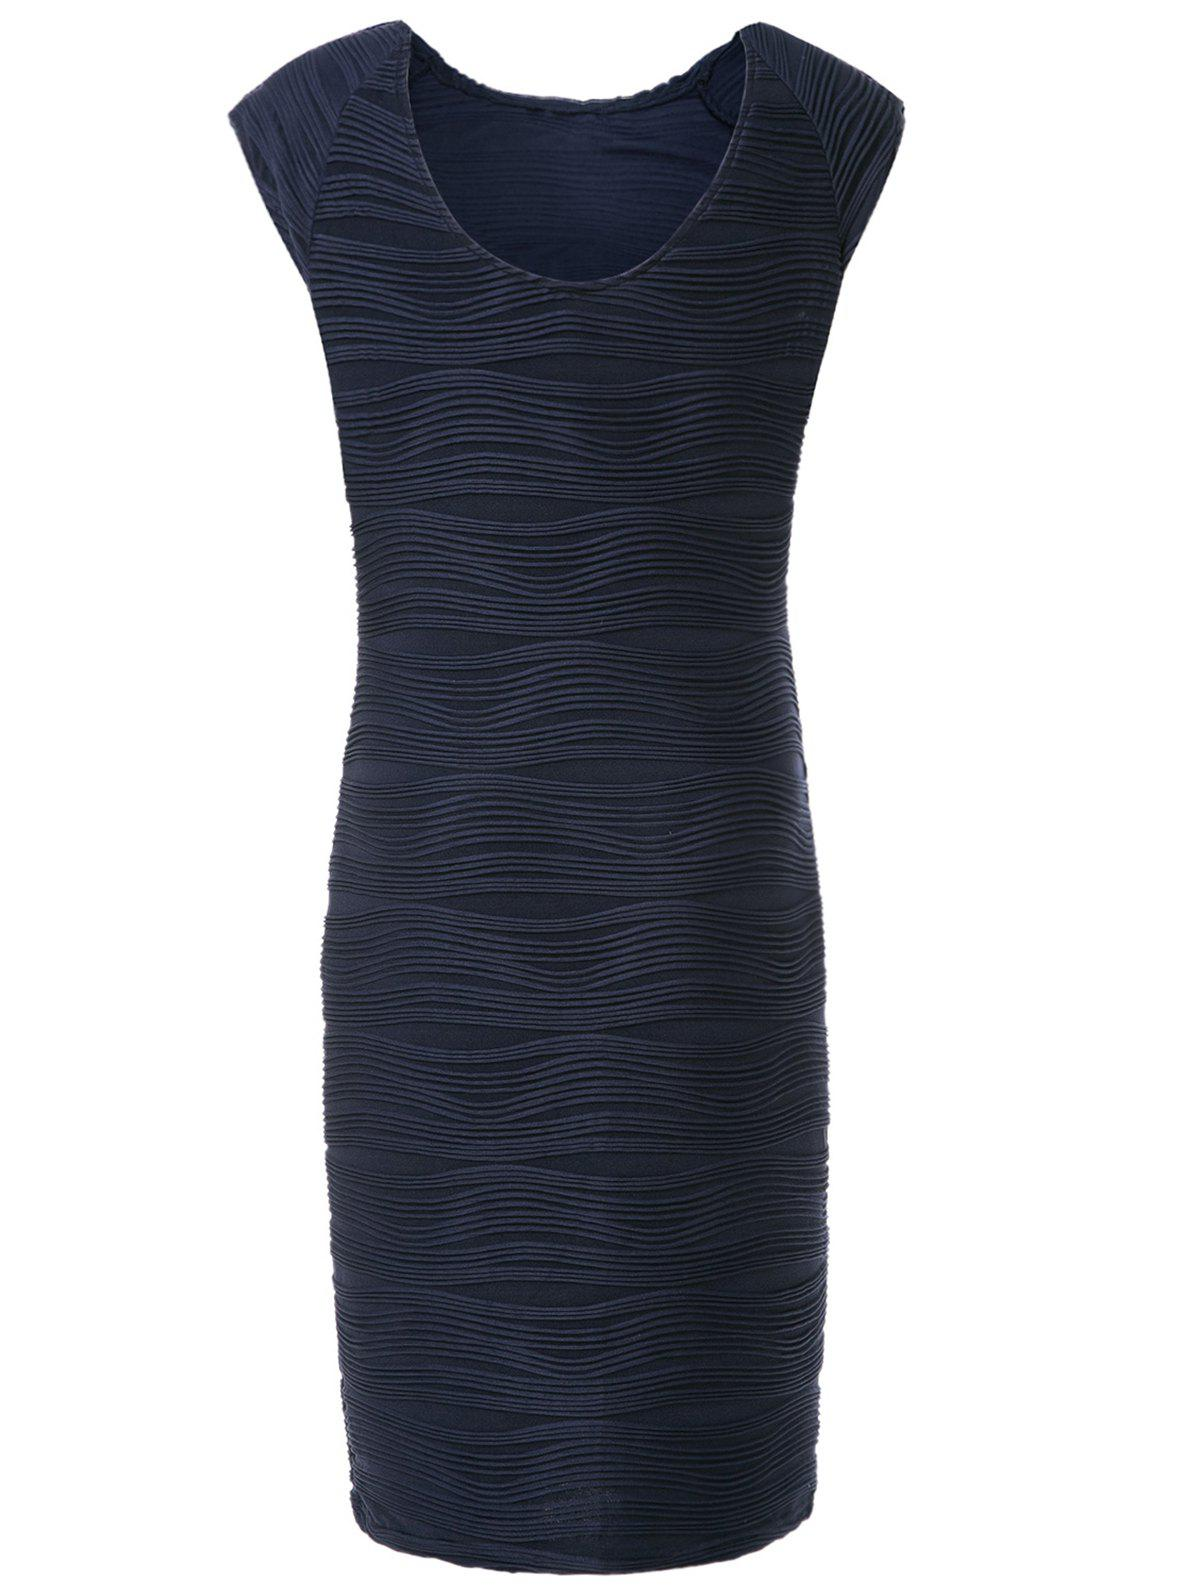 Stylish Round Collar Sleeveless Ruffled Solid Color Women's Sheath Dress - PURPLISH BLUE M